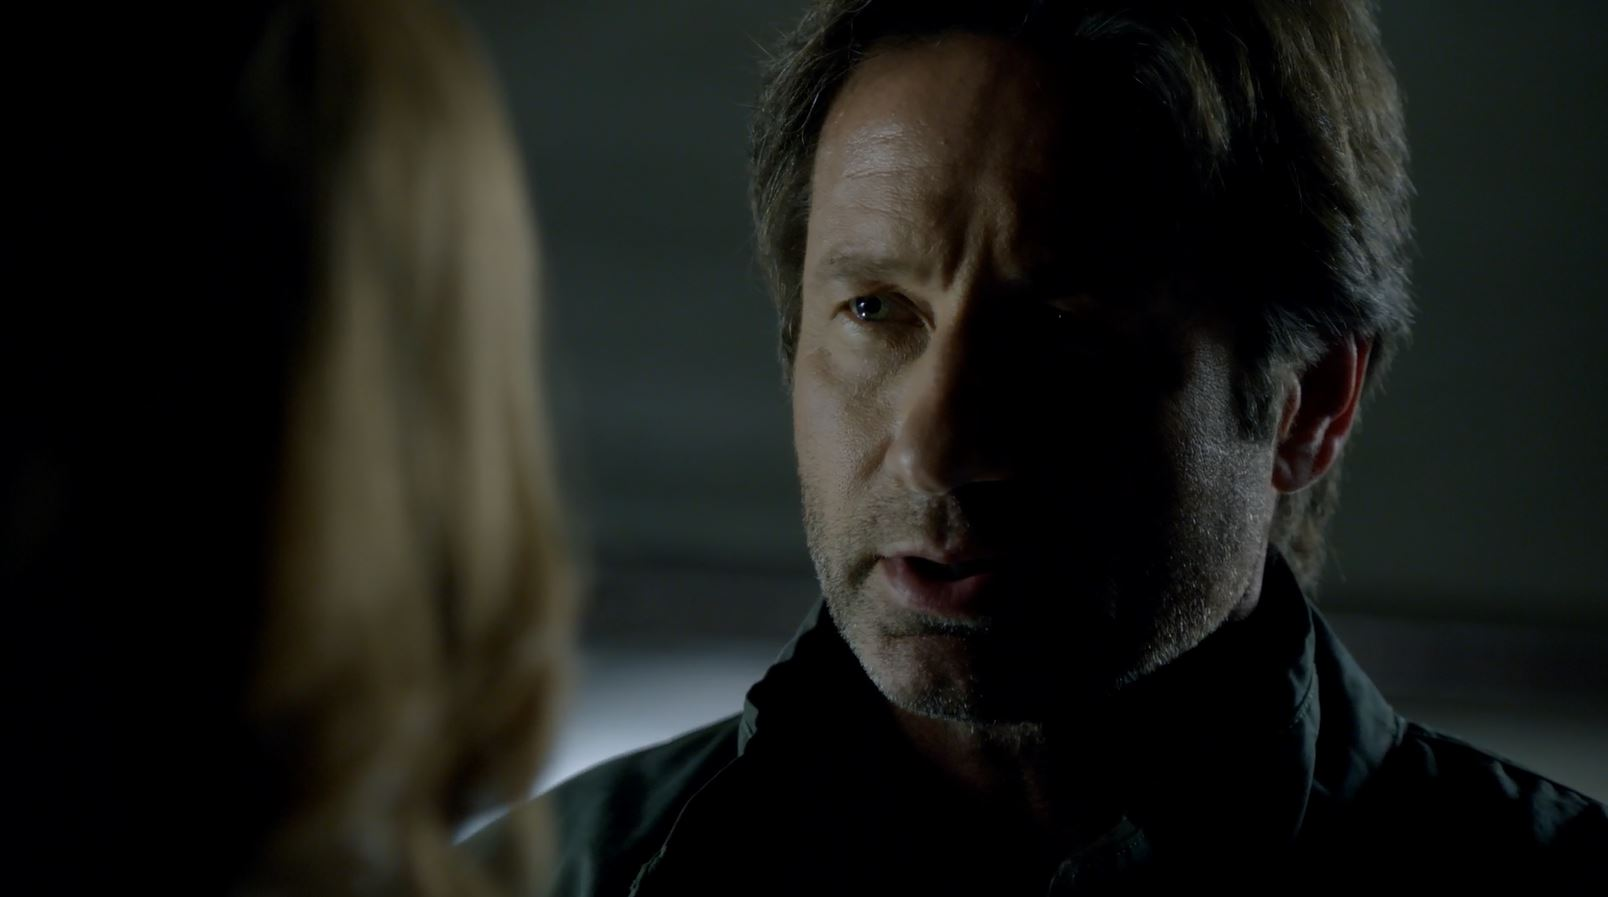 The X-Files (miniseries) My Struggle Review. David Duchovny as Fox Mulder.